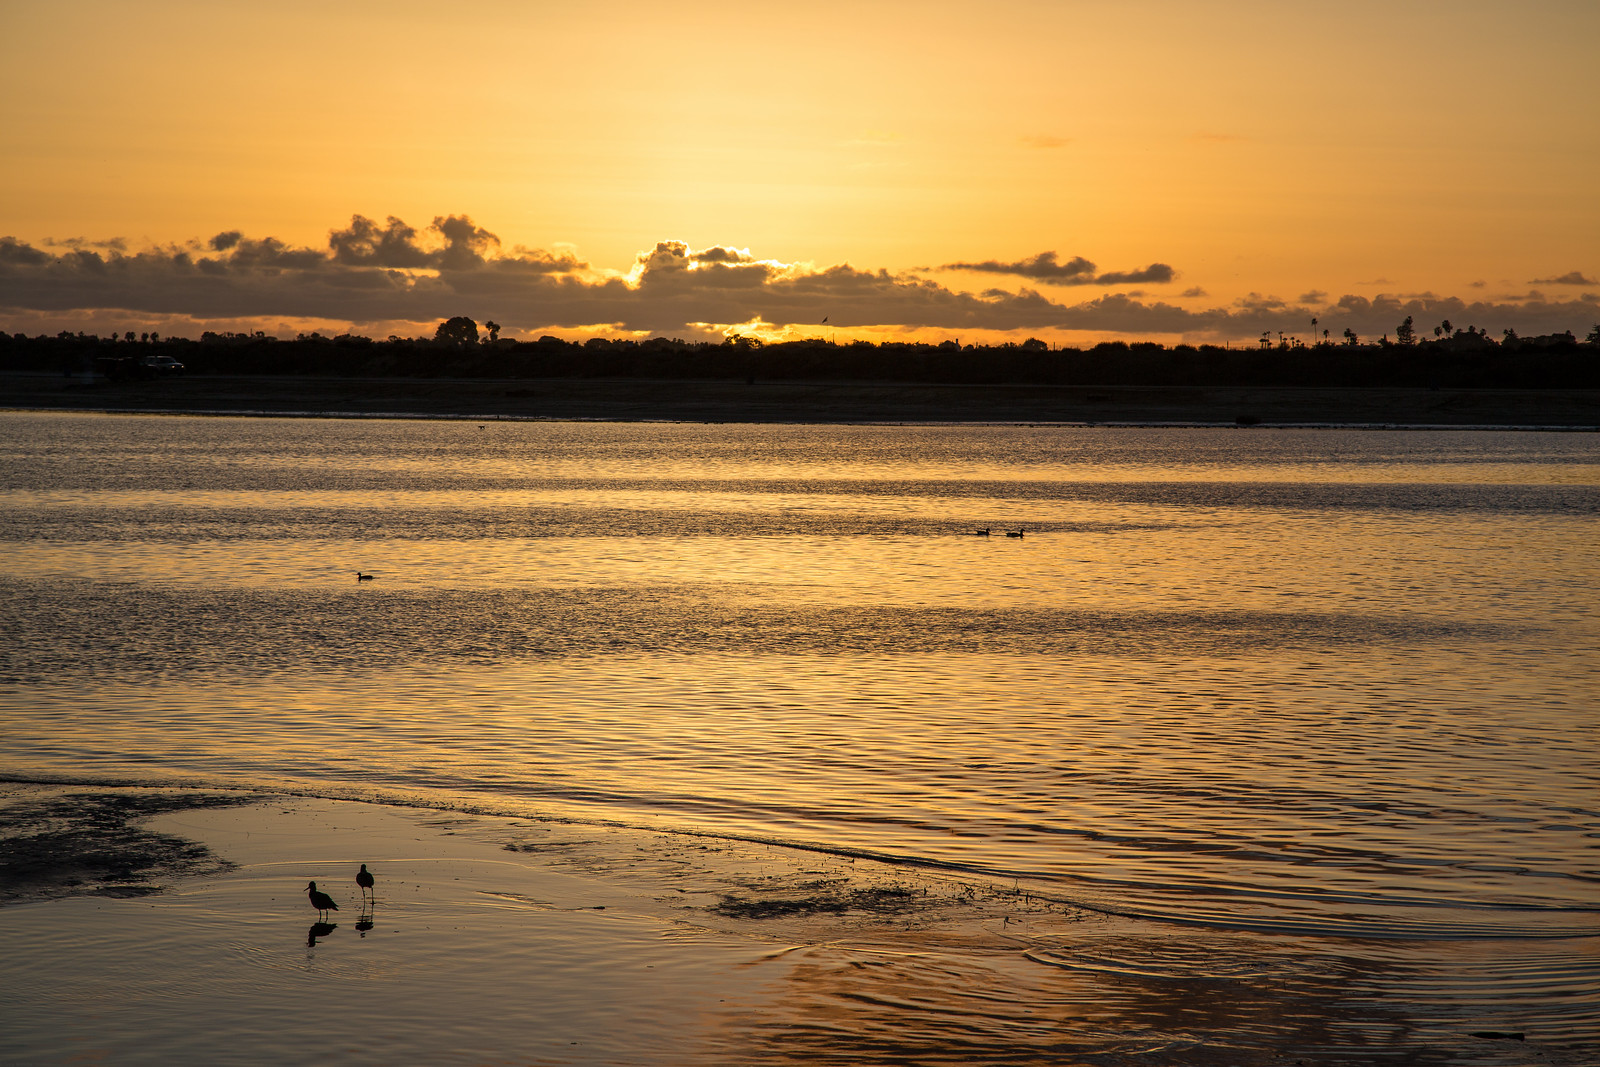 Mission Bay Park - Sunset on the Water - San Diego